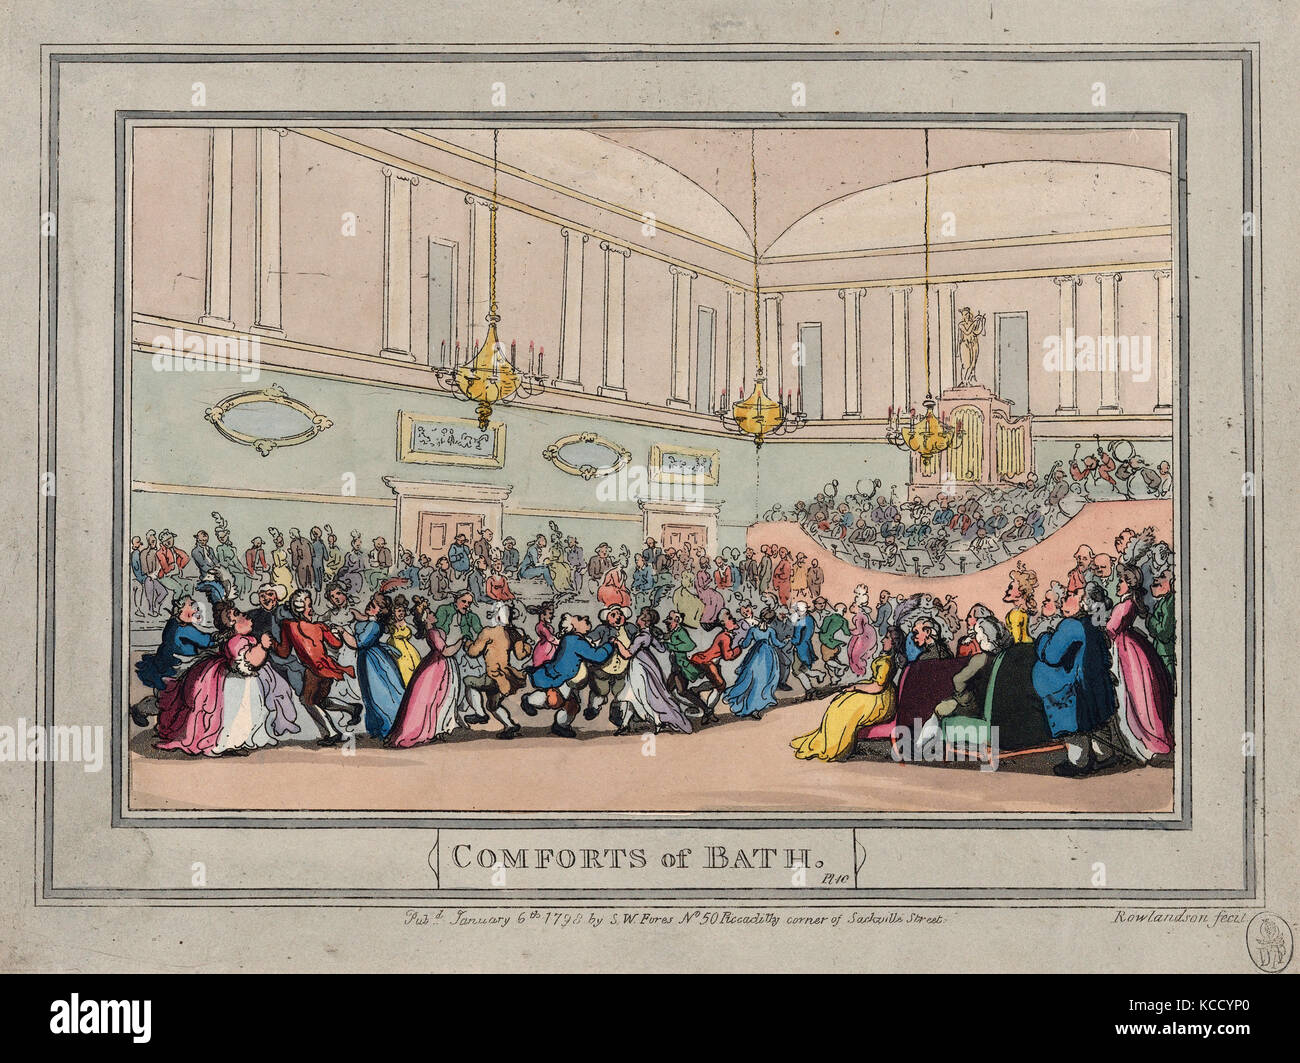 Drawings and Prints, Print, Comforts of Bath, Plate 10, Comforts of Bath, Artist, Publisher, Thomas Rowlandson Stock Photo